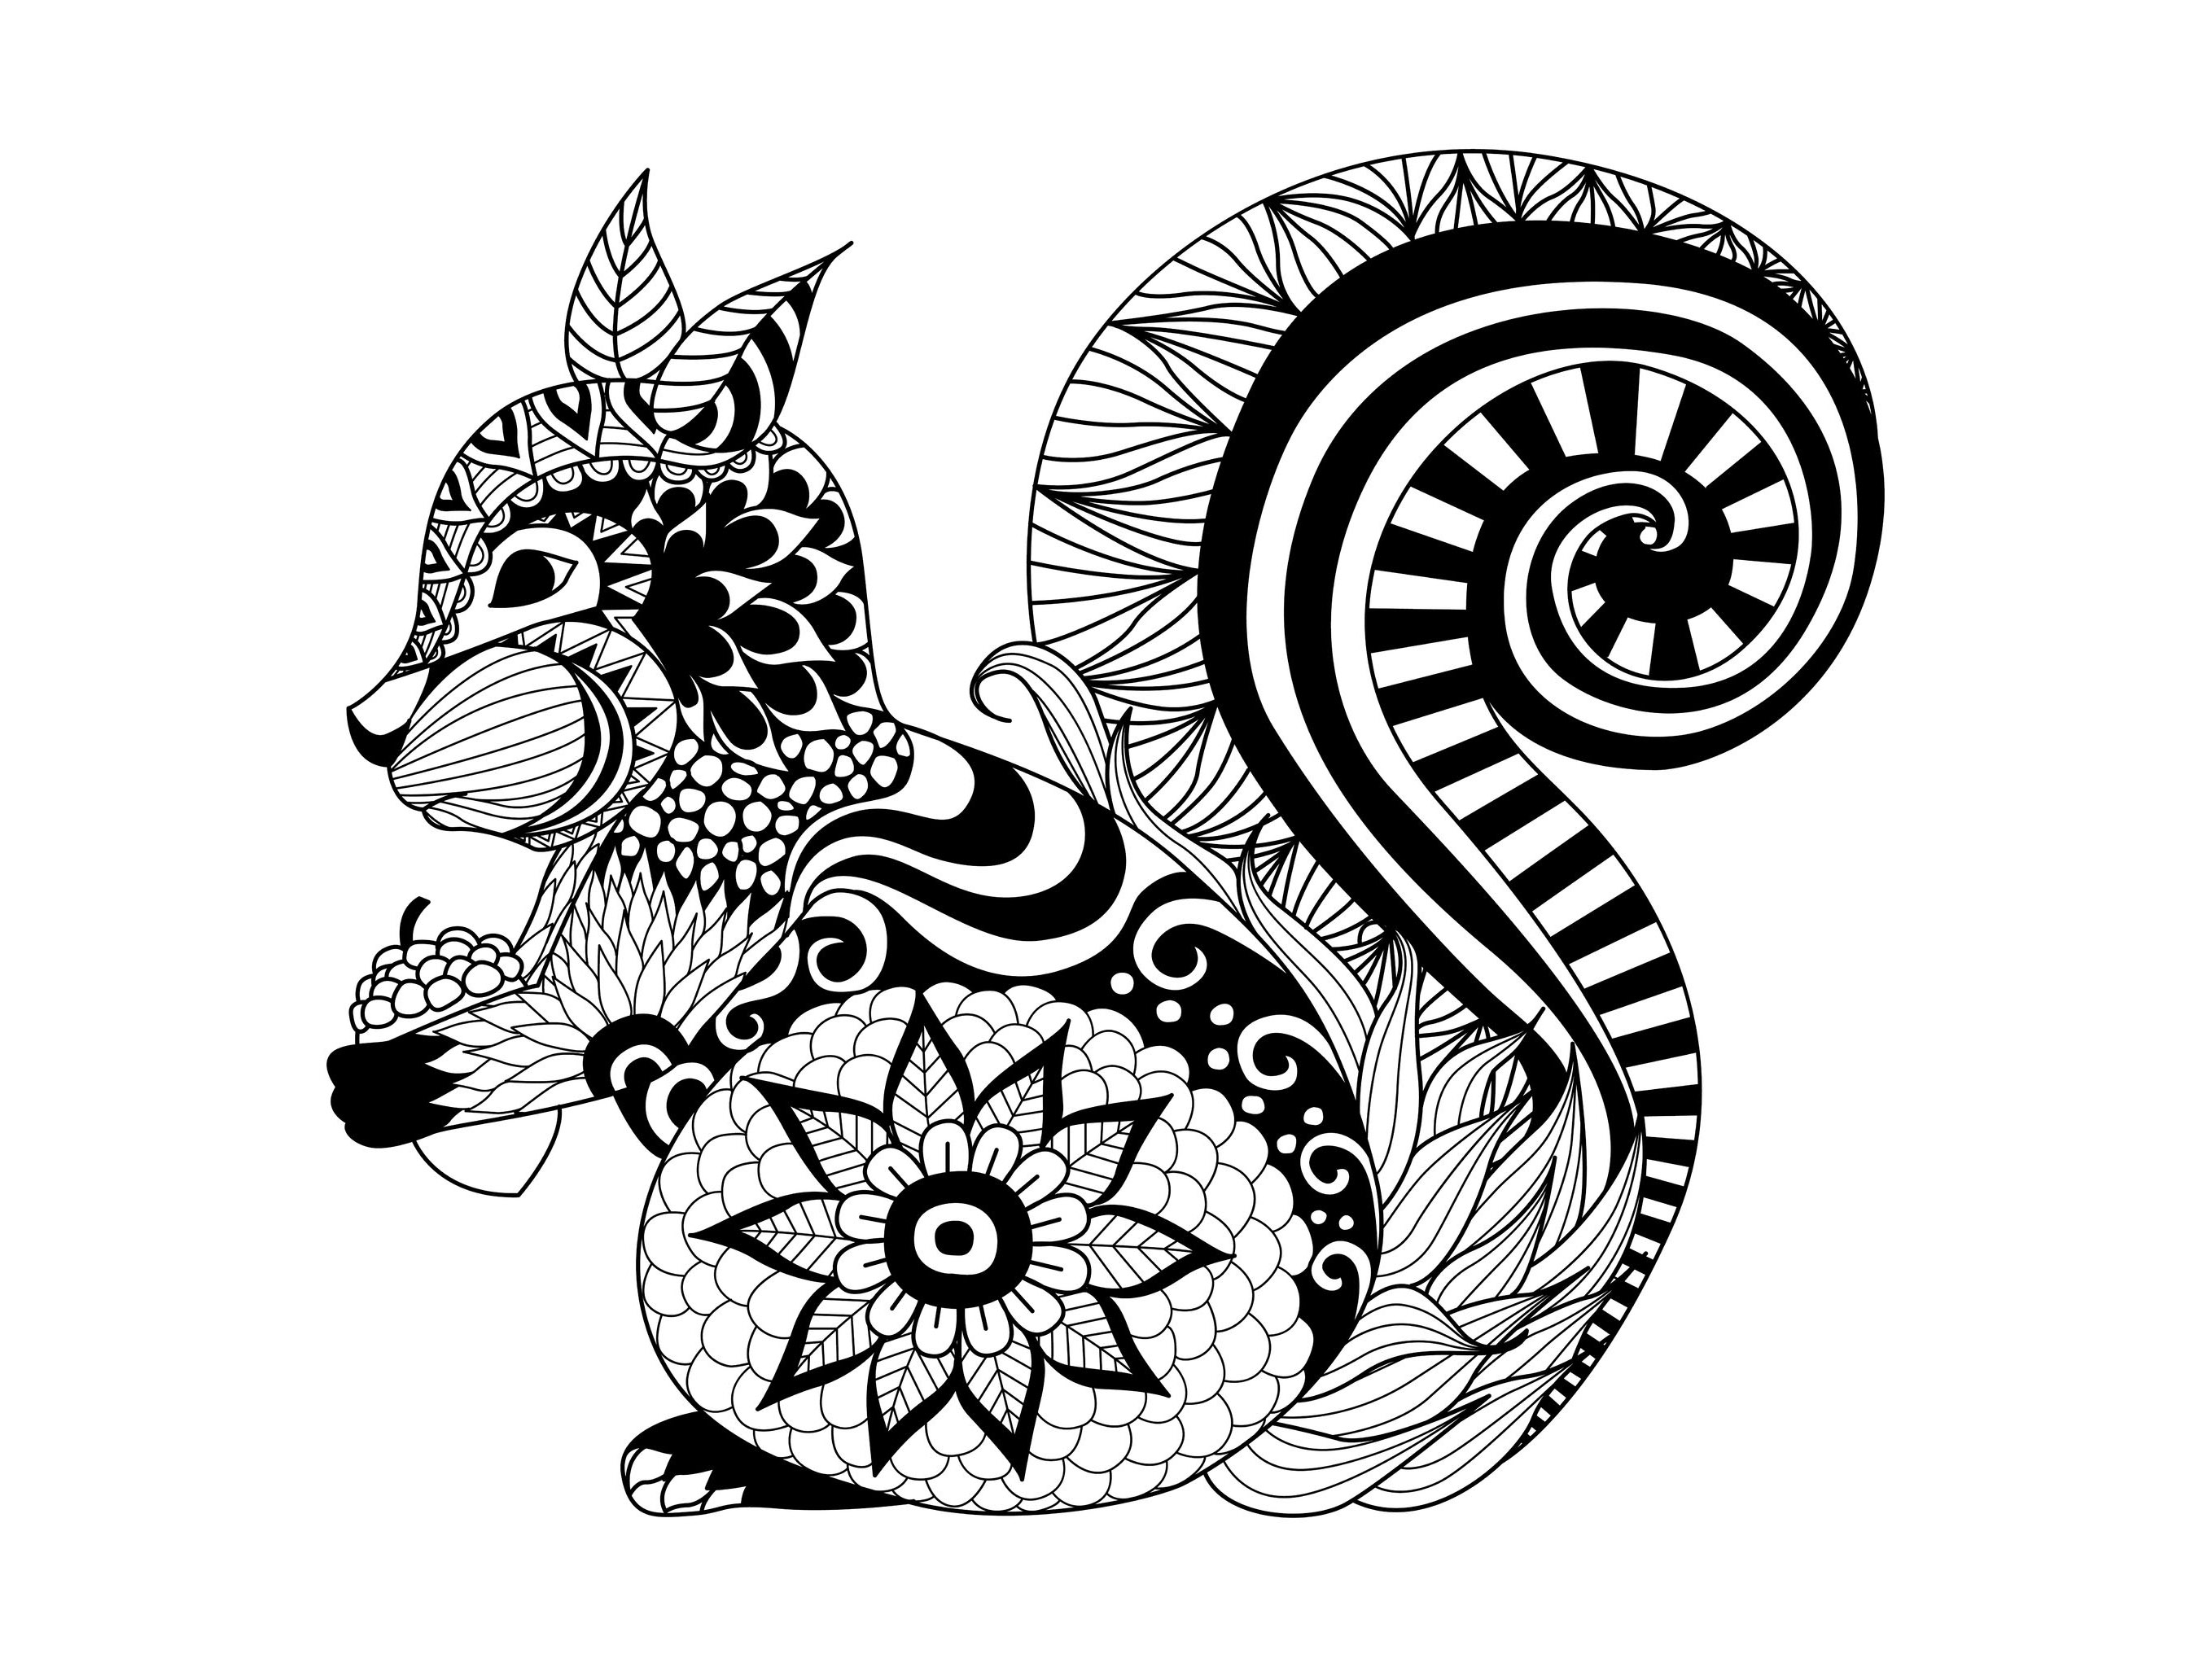 Animal coloring pages for adults - Cute Little Squirrel Drawn With Zentangle Style From The Gallery Animals Artist